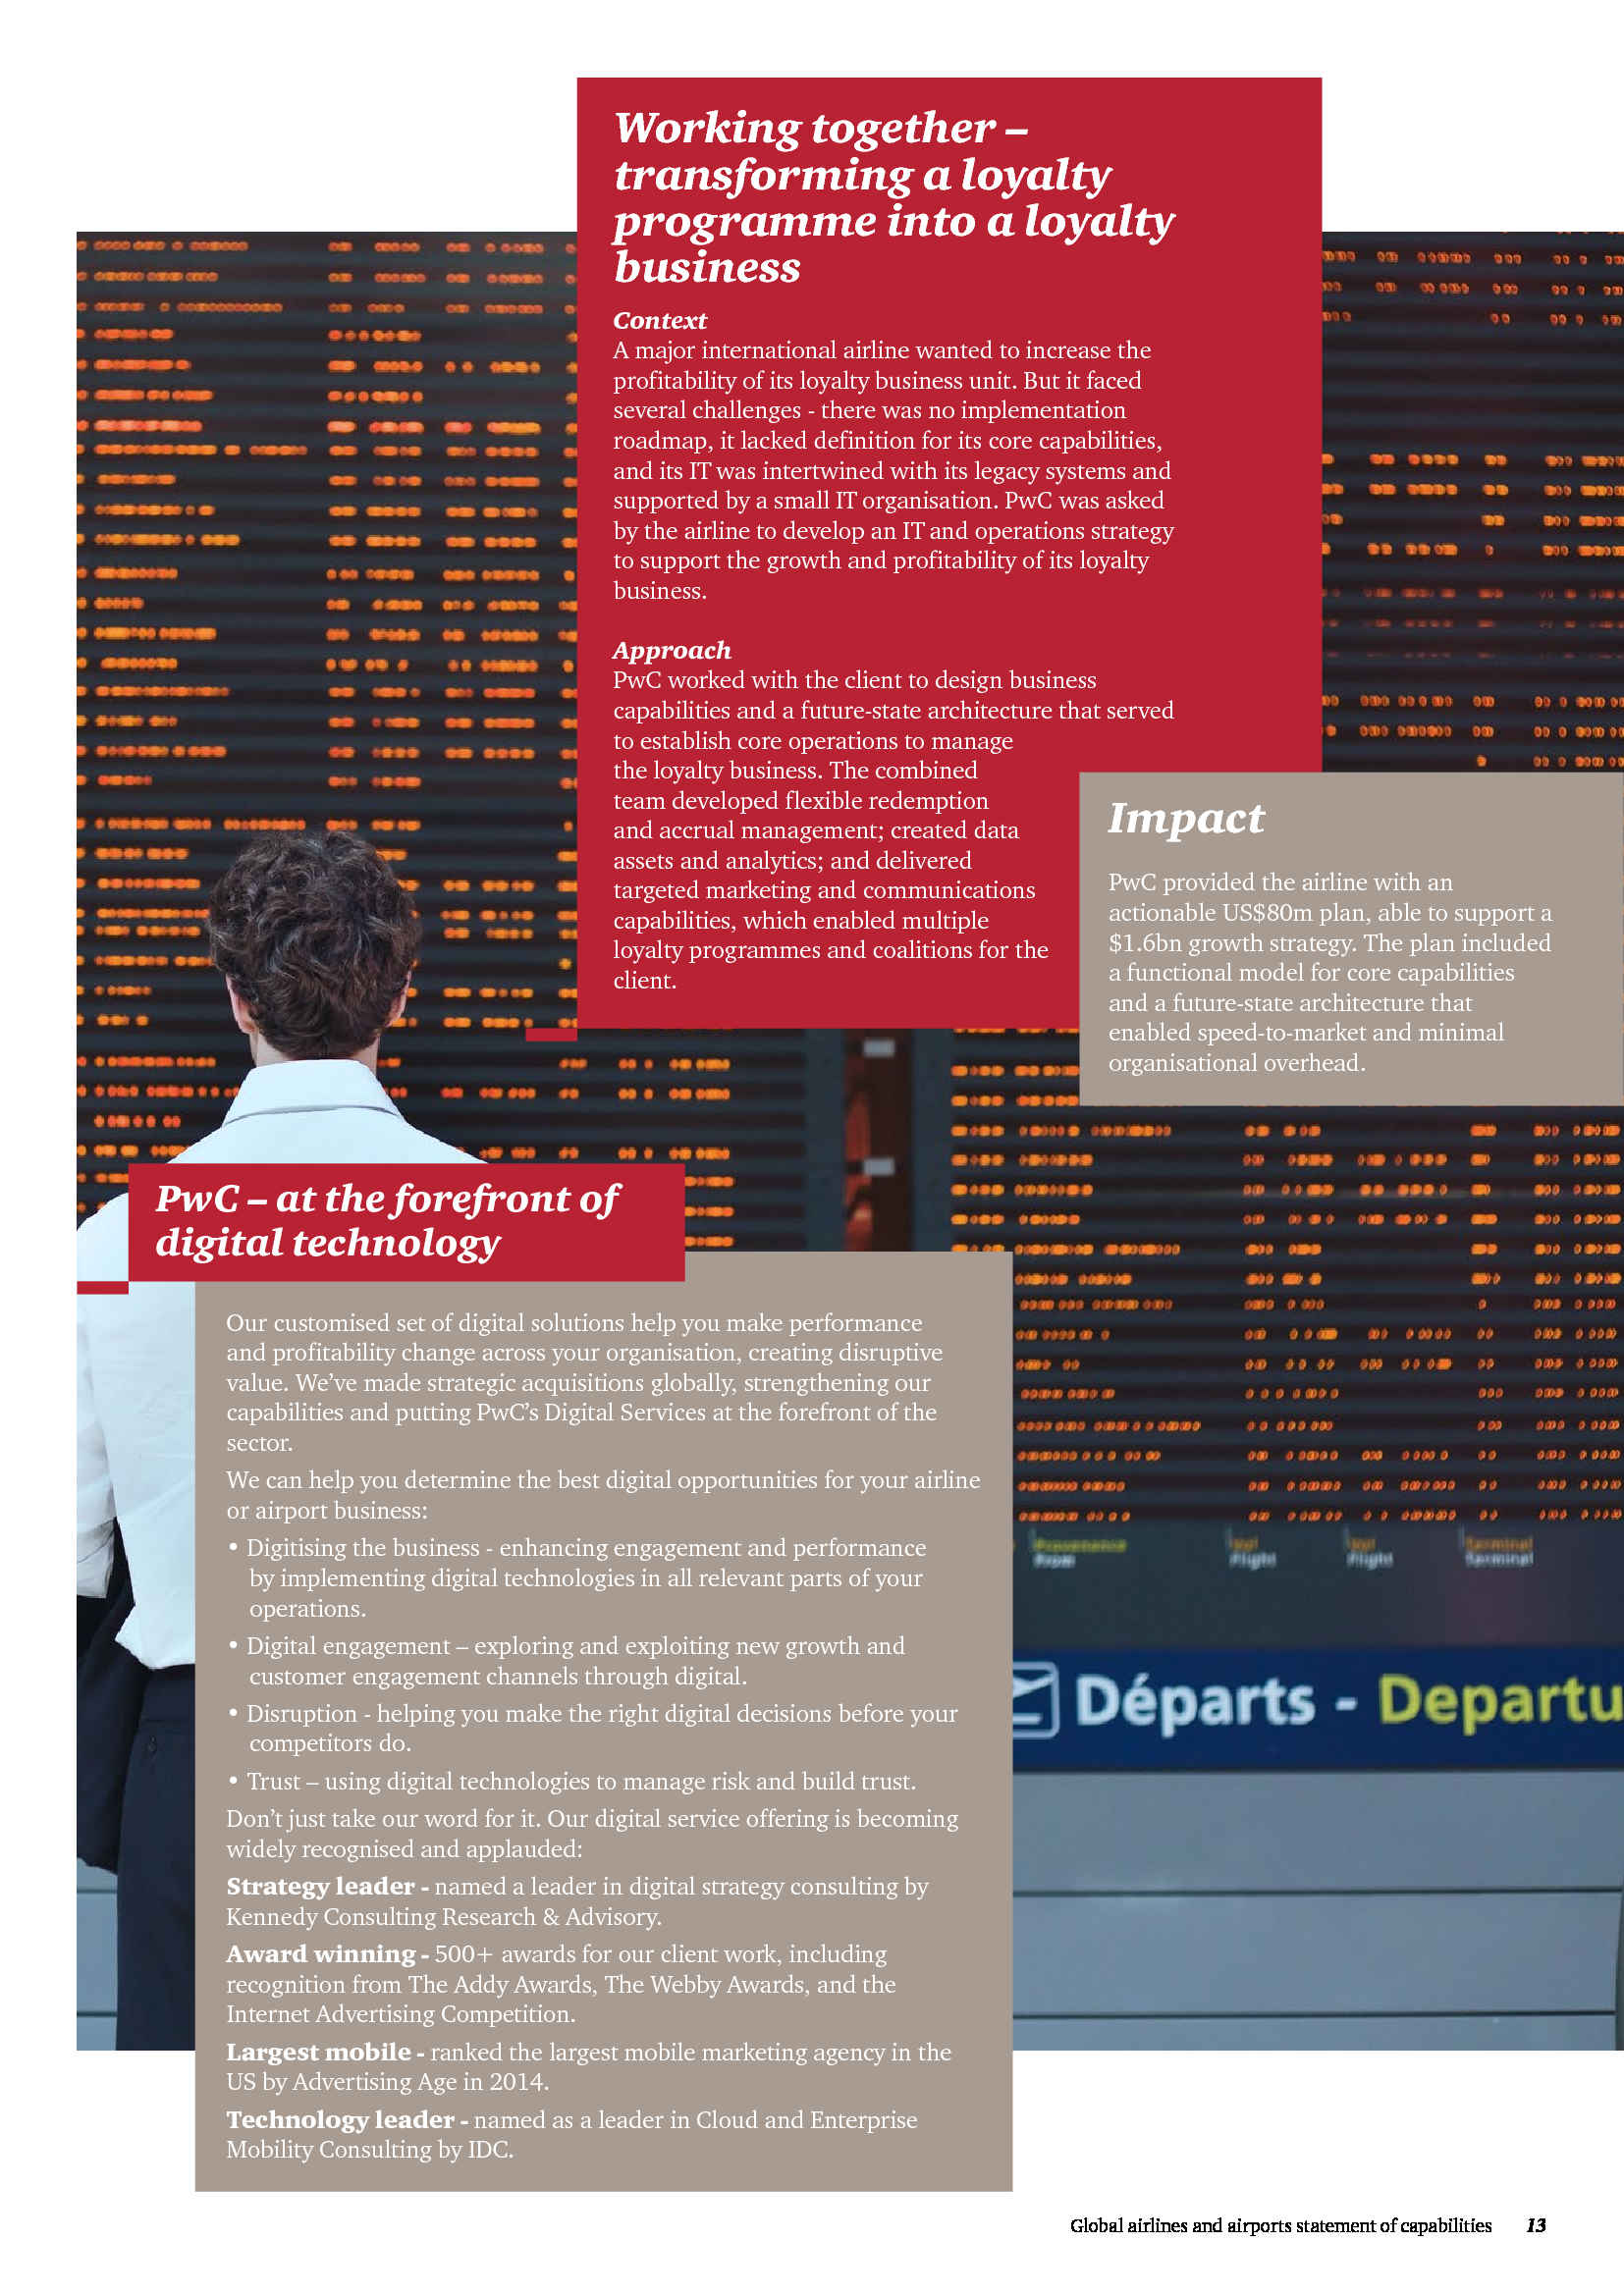 advisorselect global airlines airports statement of capabilities